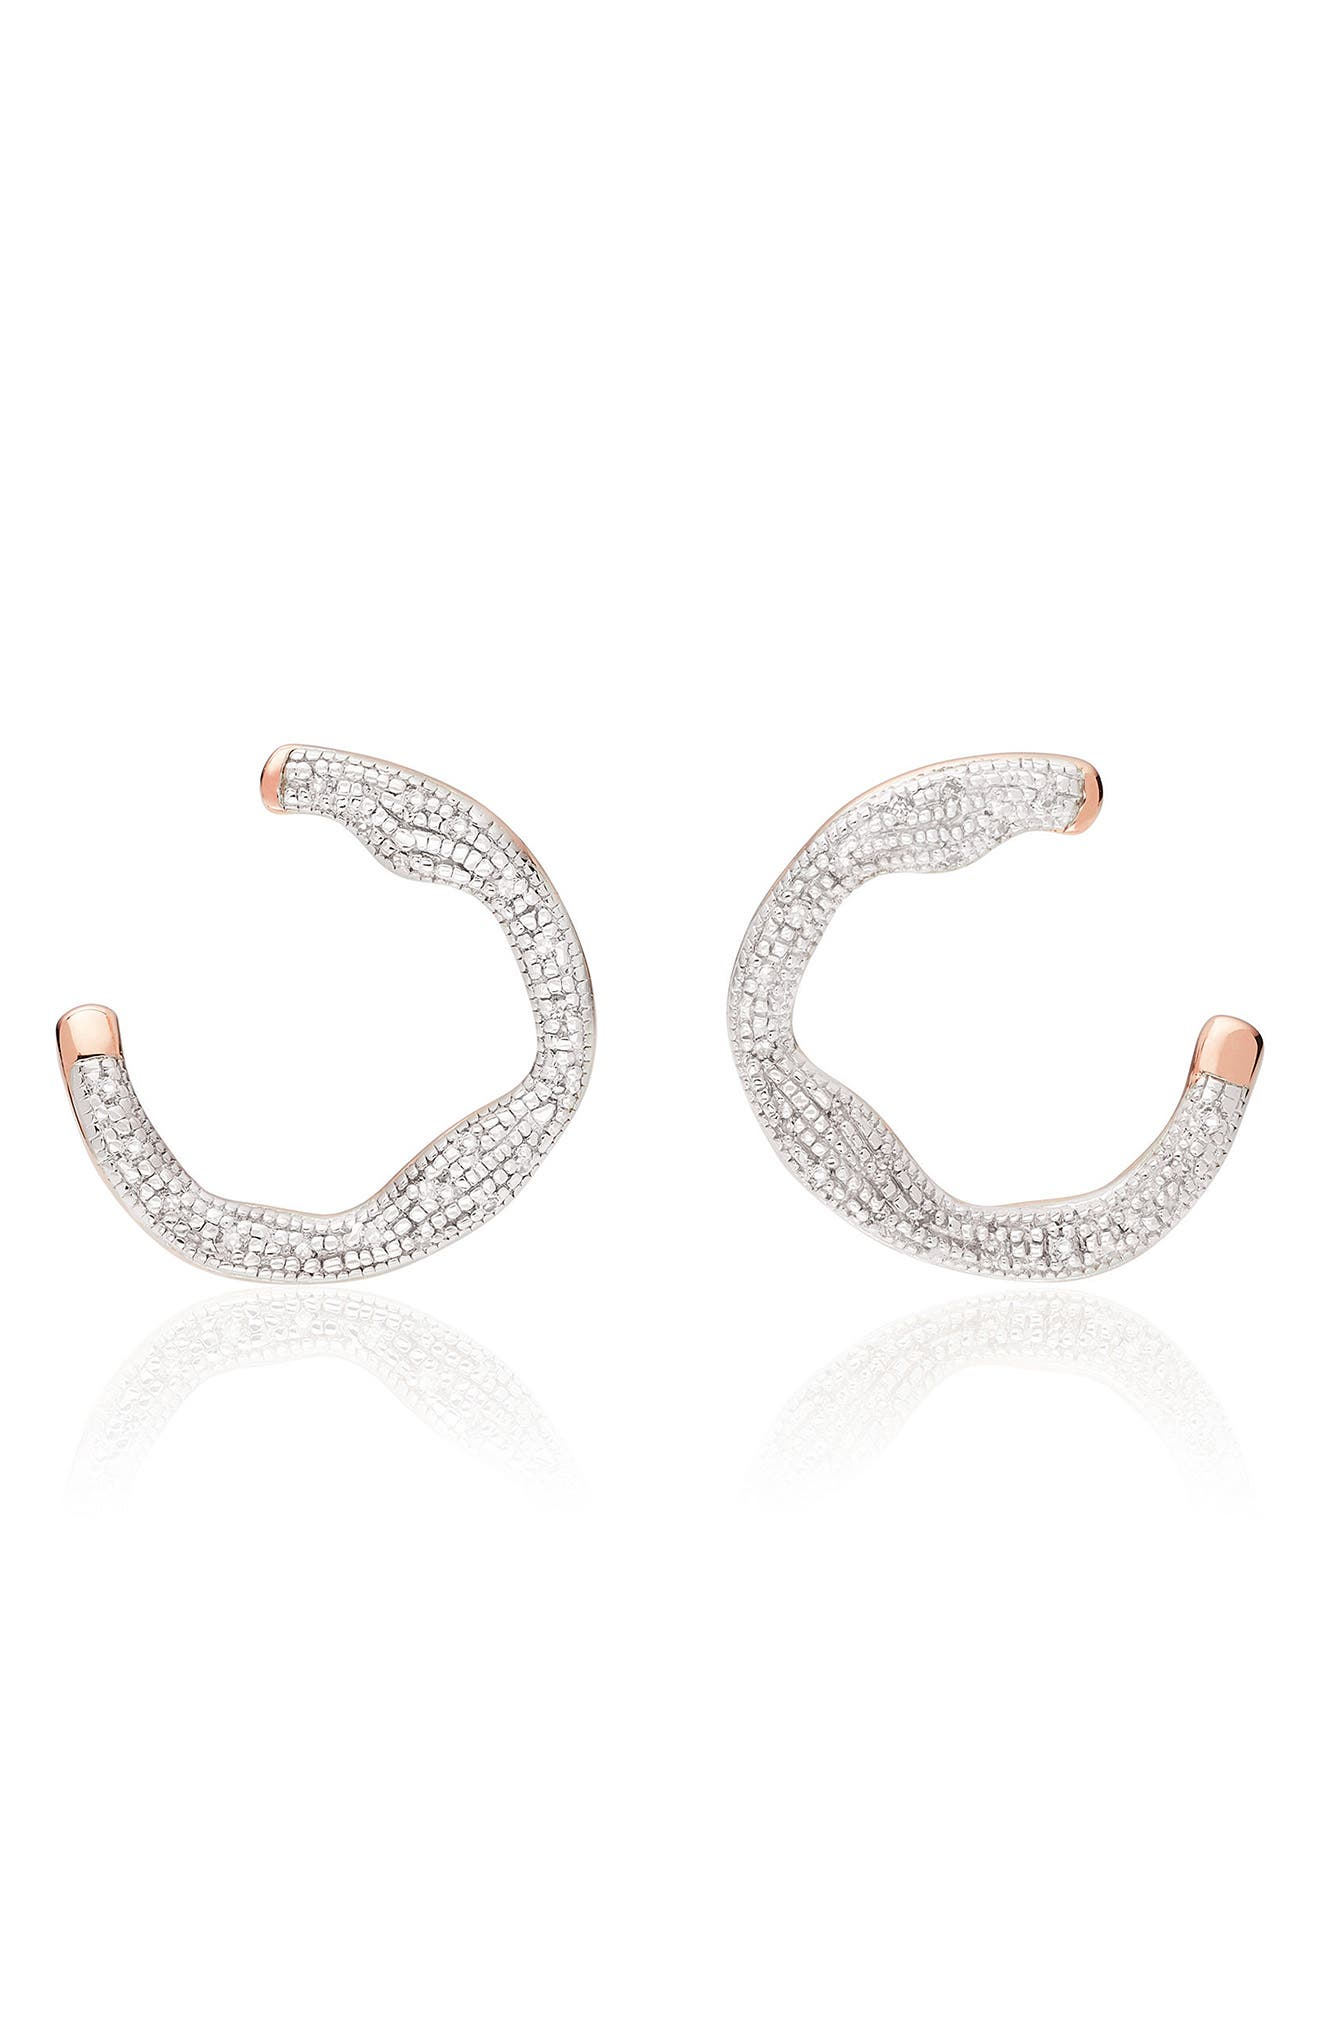 Monica Vinader Riva Diamond Circle Wrap Earrings